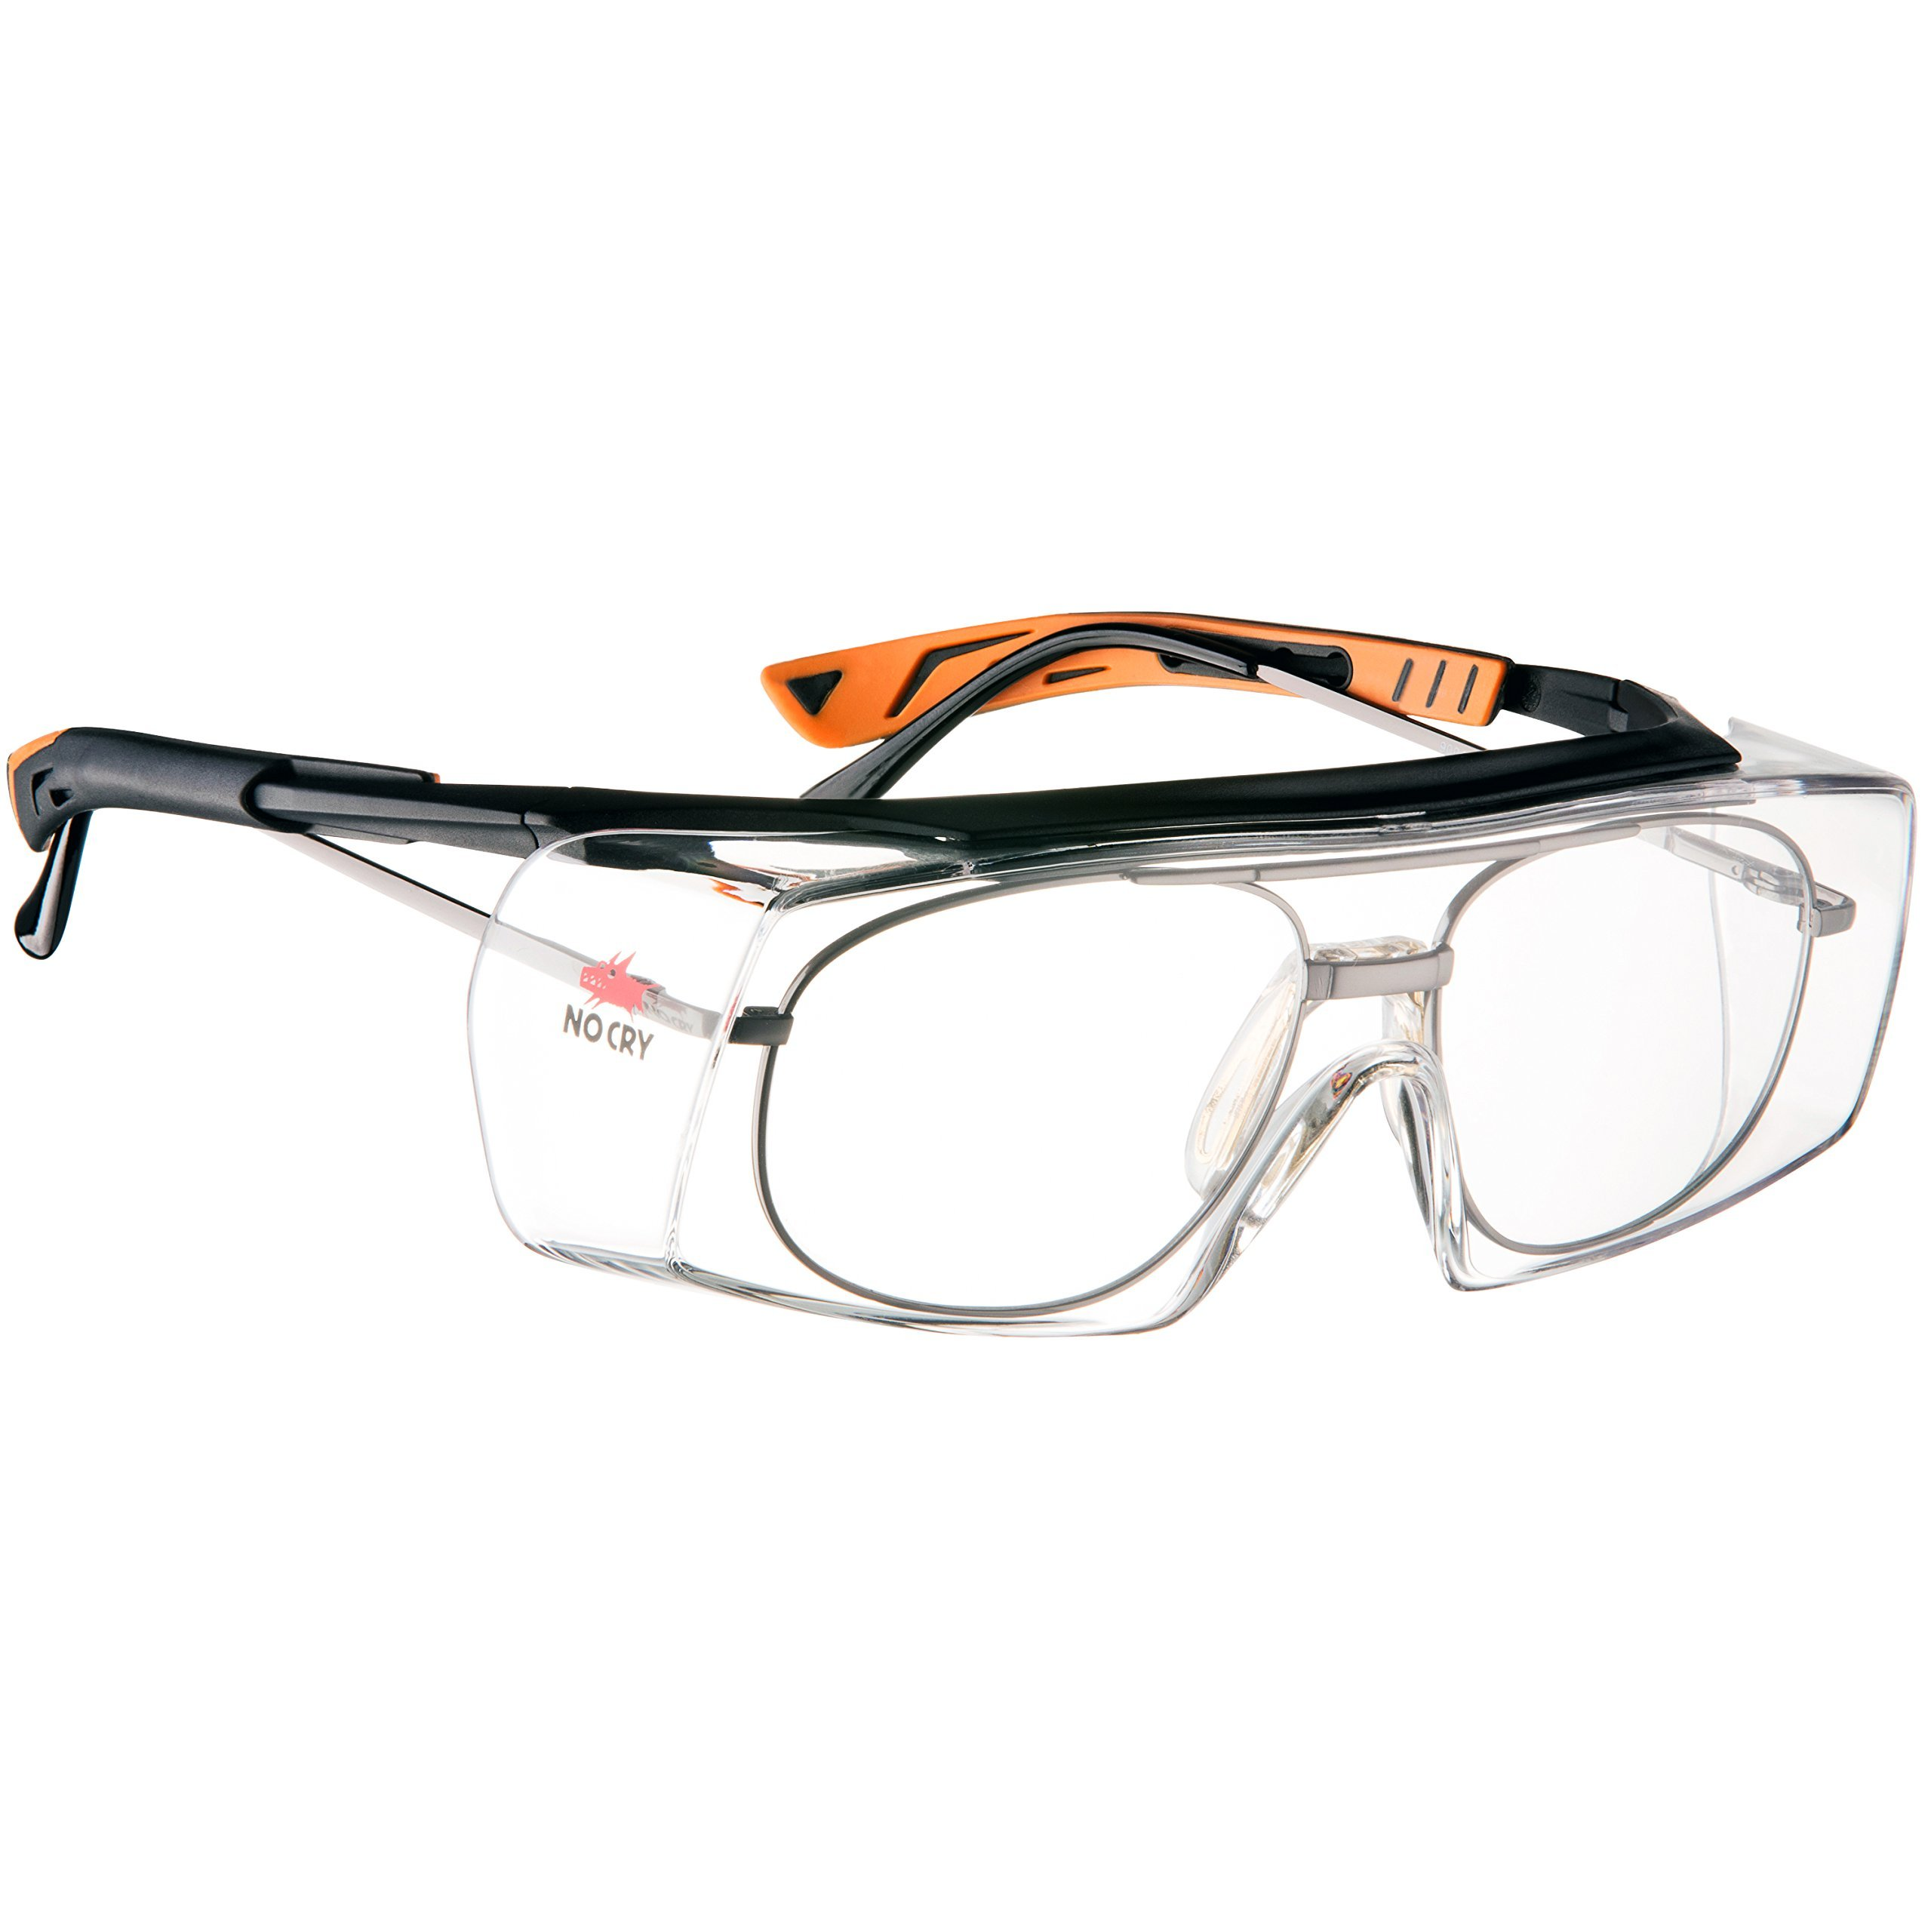 691eb1293db9a Get Quotations · NoCry Over-Spec Safety Glasses with Anti Scratch  Wrap-Around Lenses